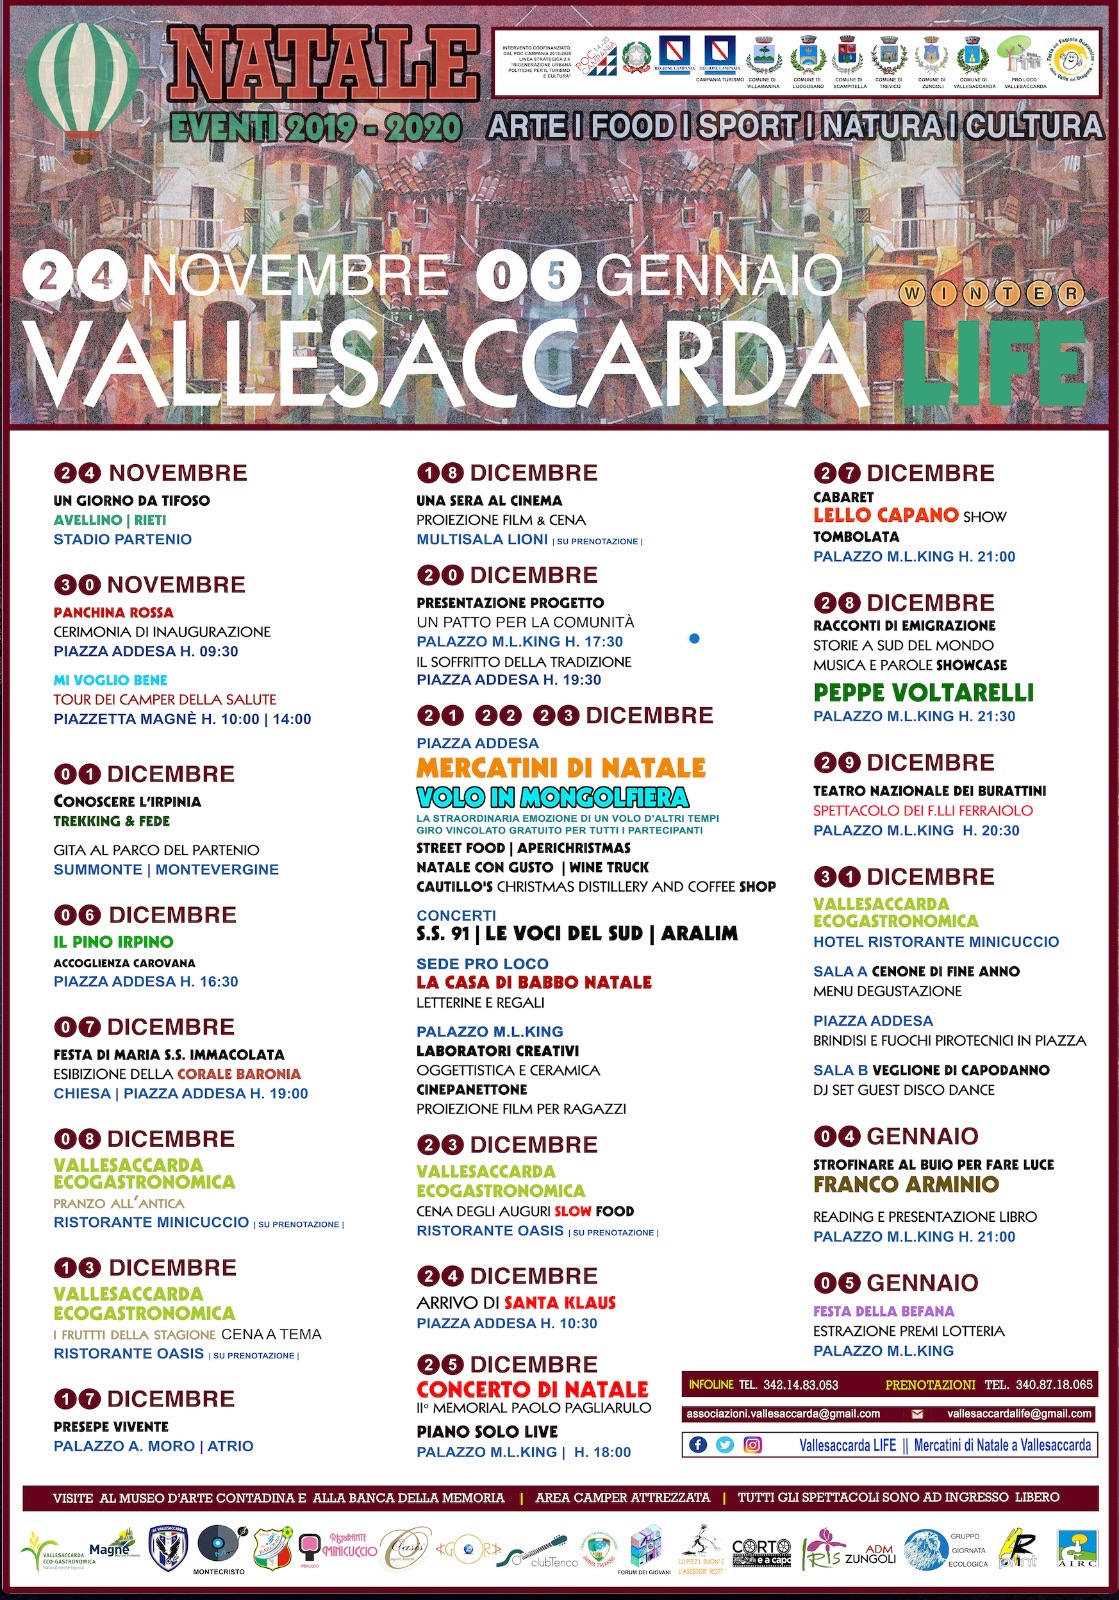 Vallesaccarda LIFE 2019